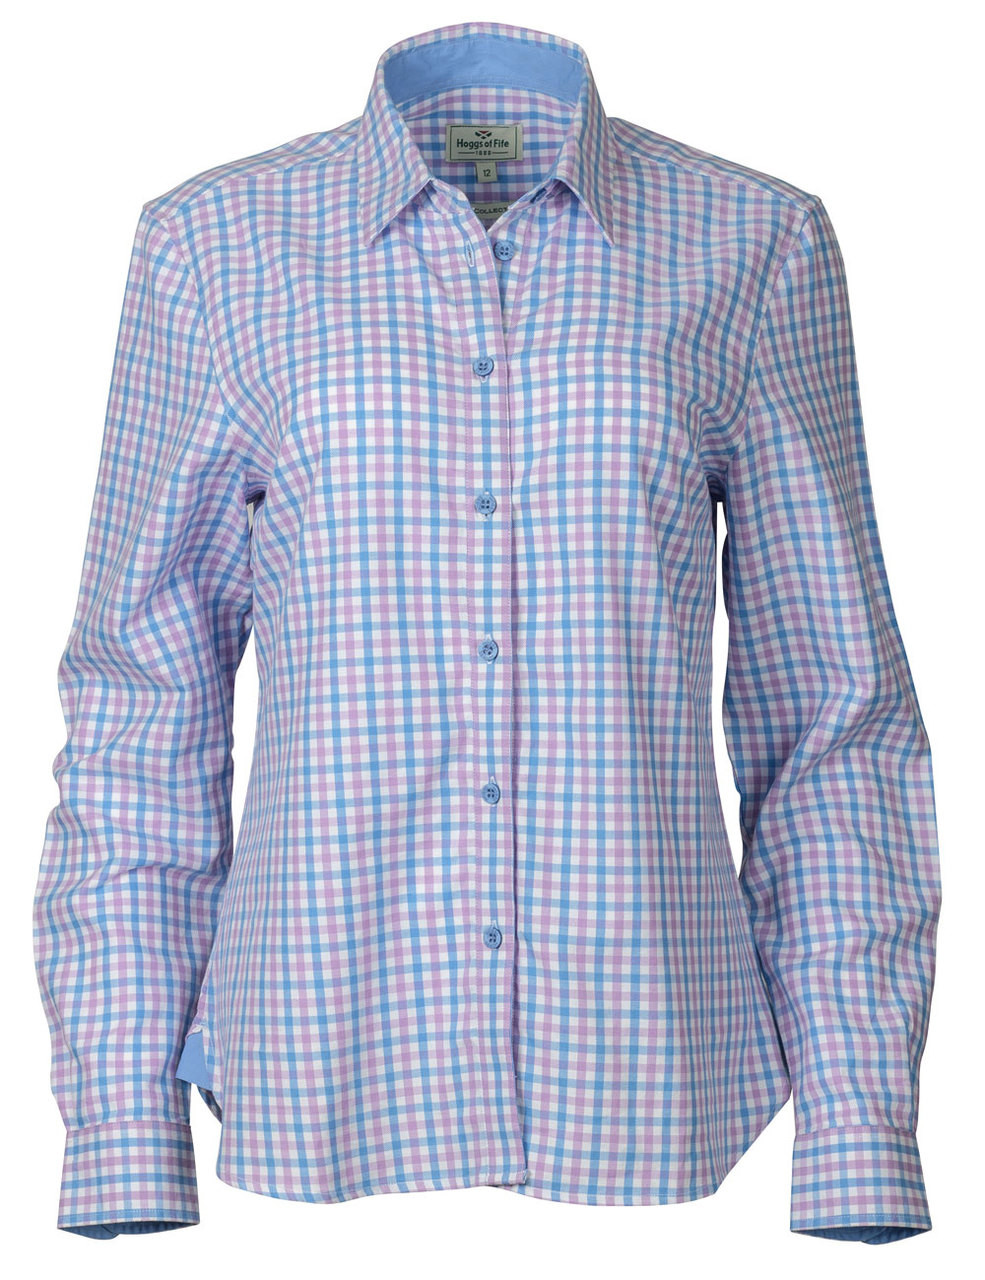 Women's Check Shirts